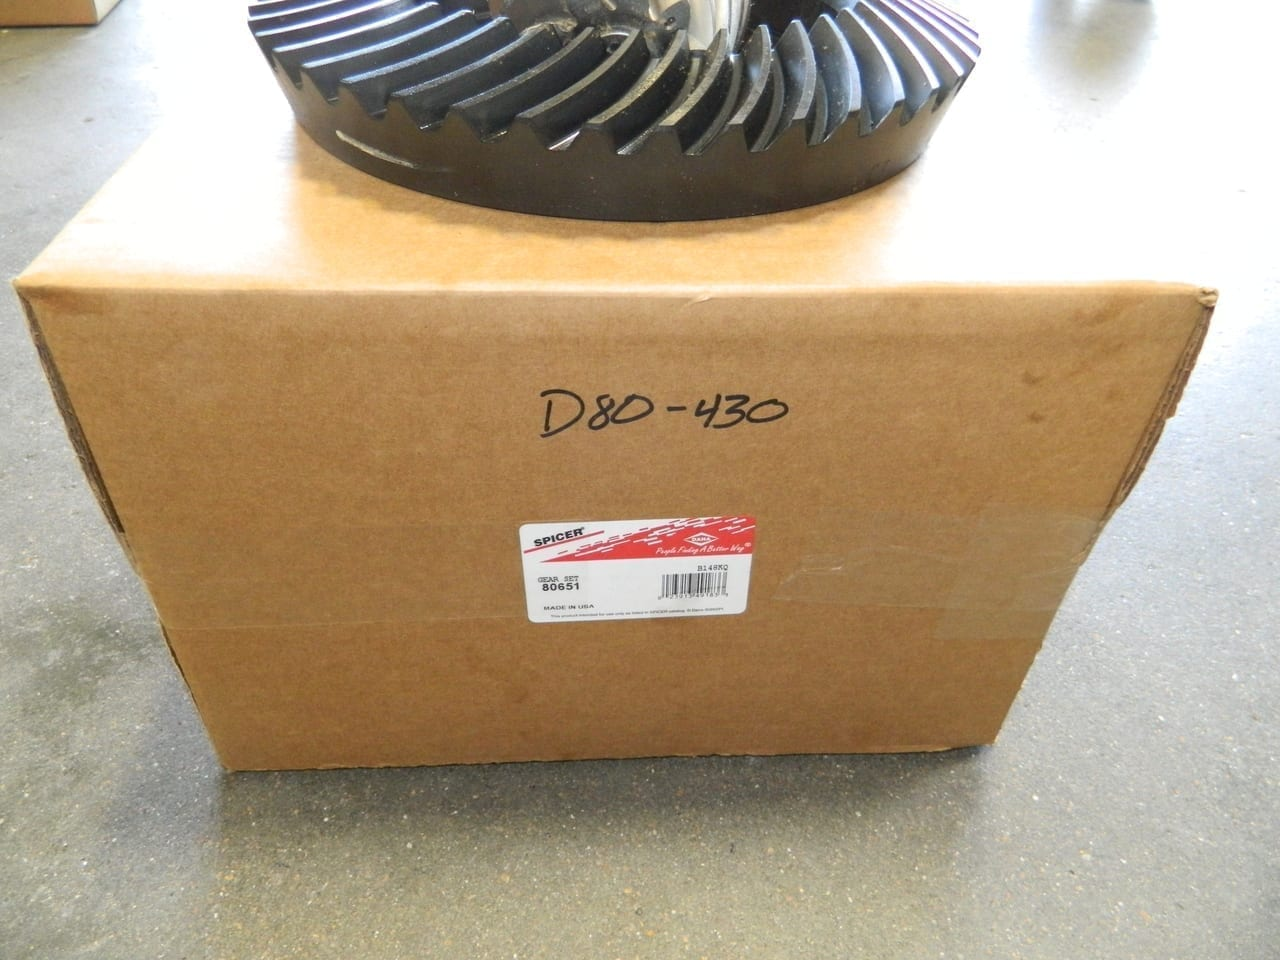 Genuine Dana 80 4:30 Ring Gear & Pinion Set Chevy Ford Dodge 430 Made in U.S.A.